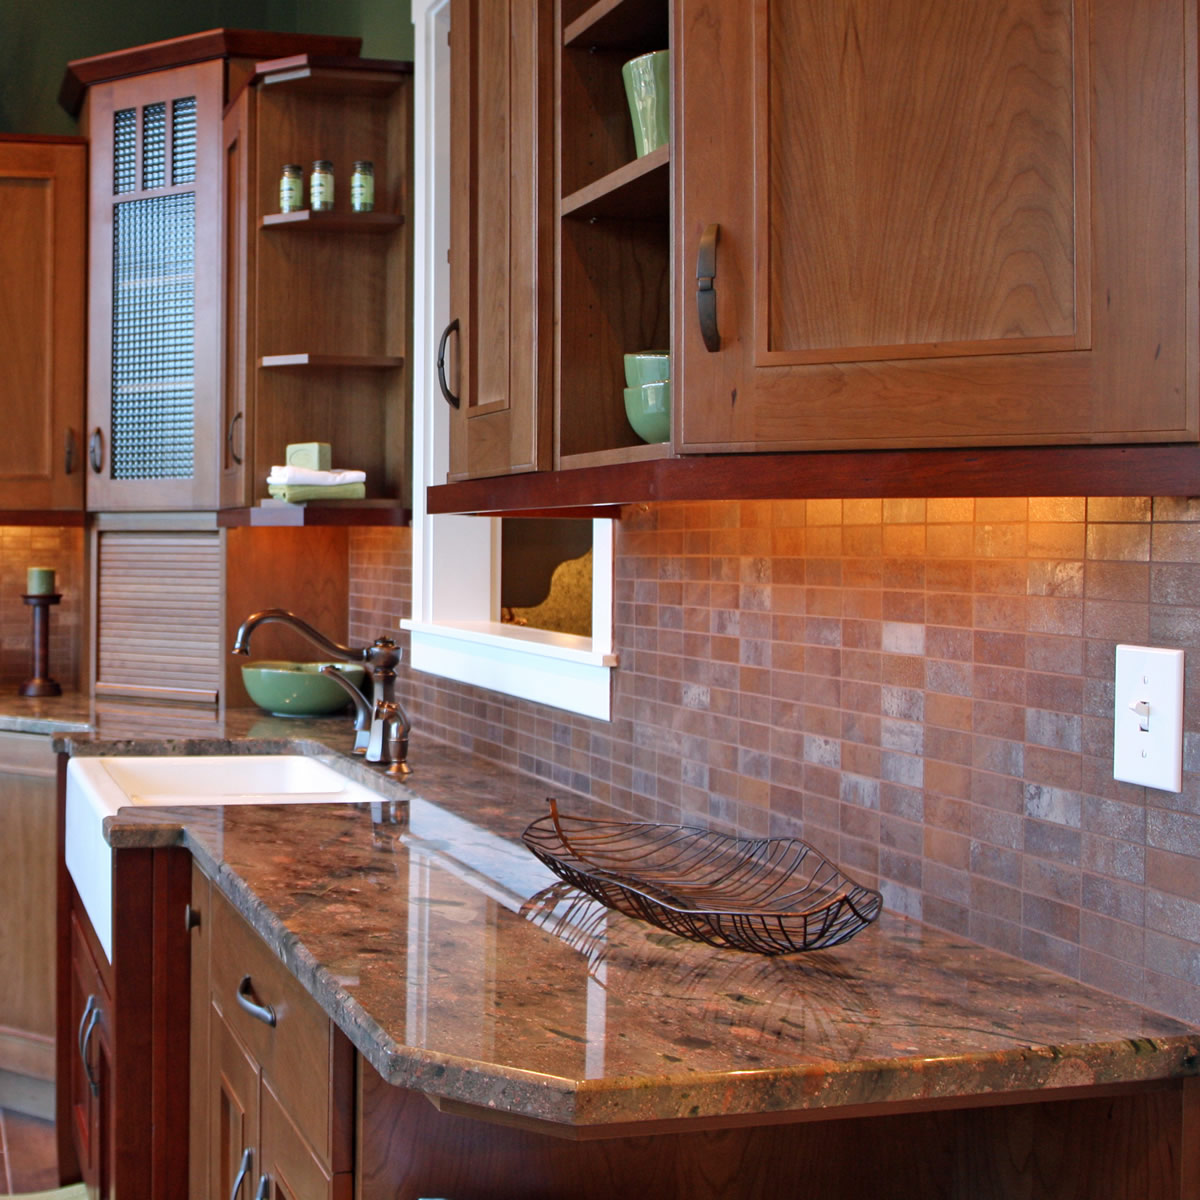 local kitchen remodeling renovation and design contractor minneapolis mn kitchen remodel hawaii Design Kitchen Remodeling Minnesota